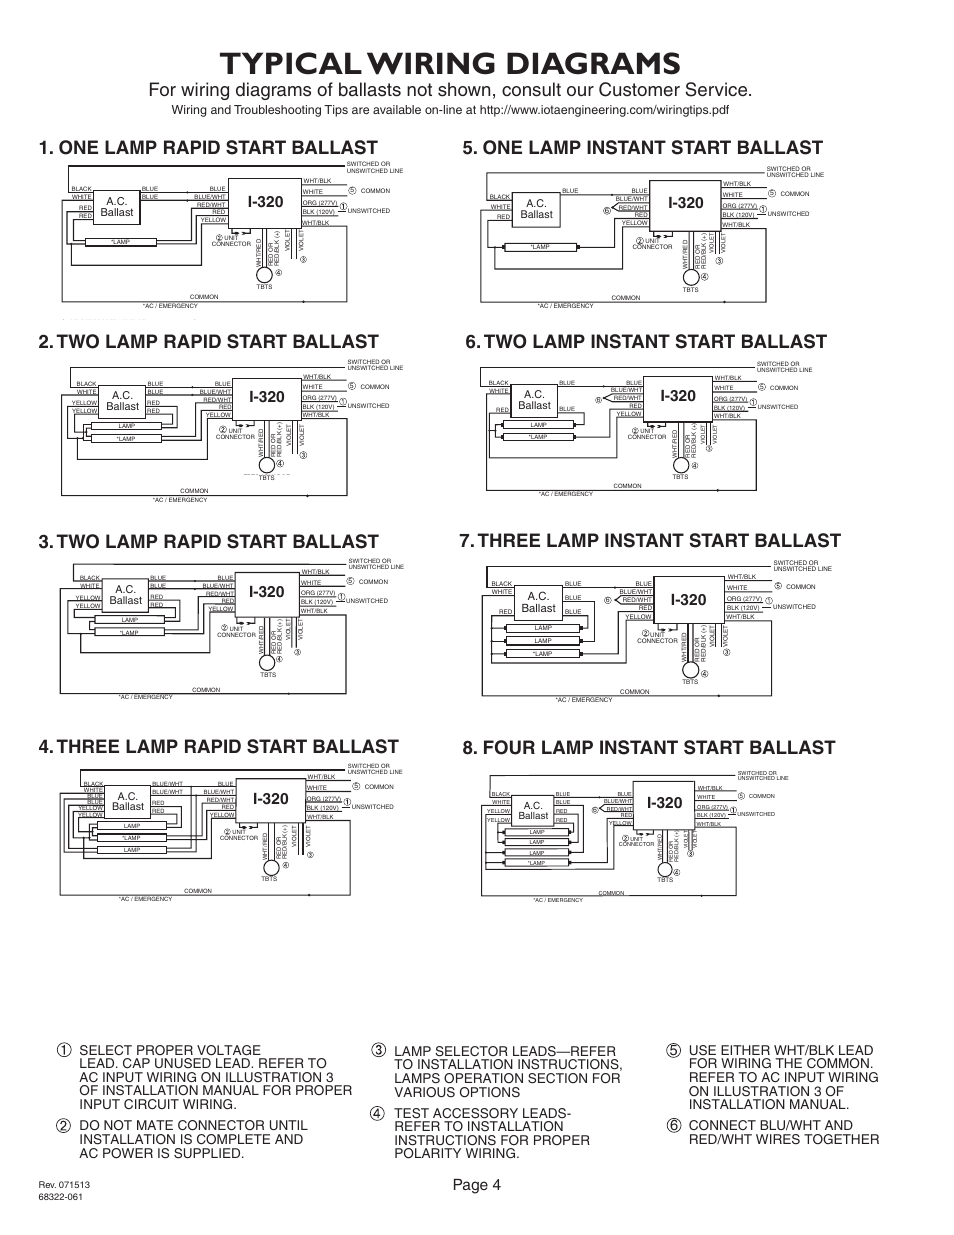 iota i 320 page4 eb60 emergency ballasts wiring diagram diagram wiring diagrams  at sewacar.co